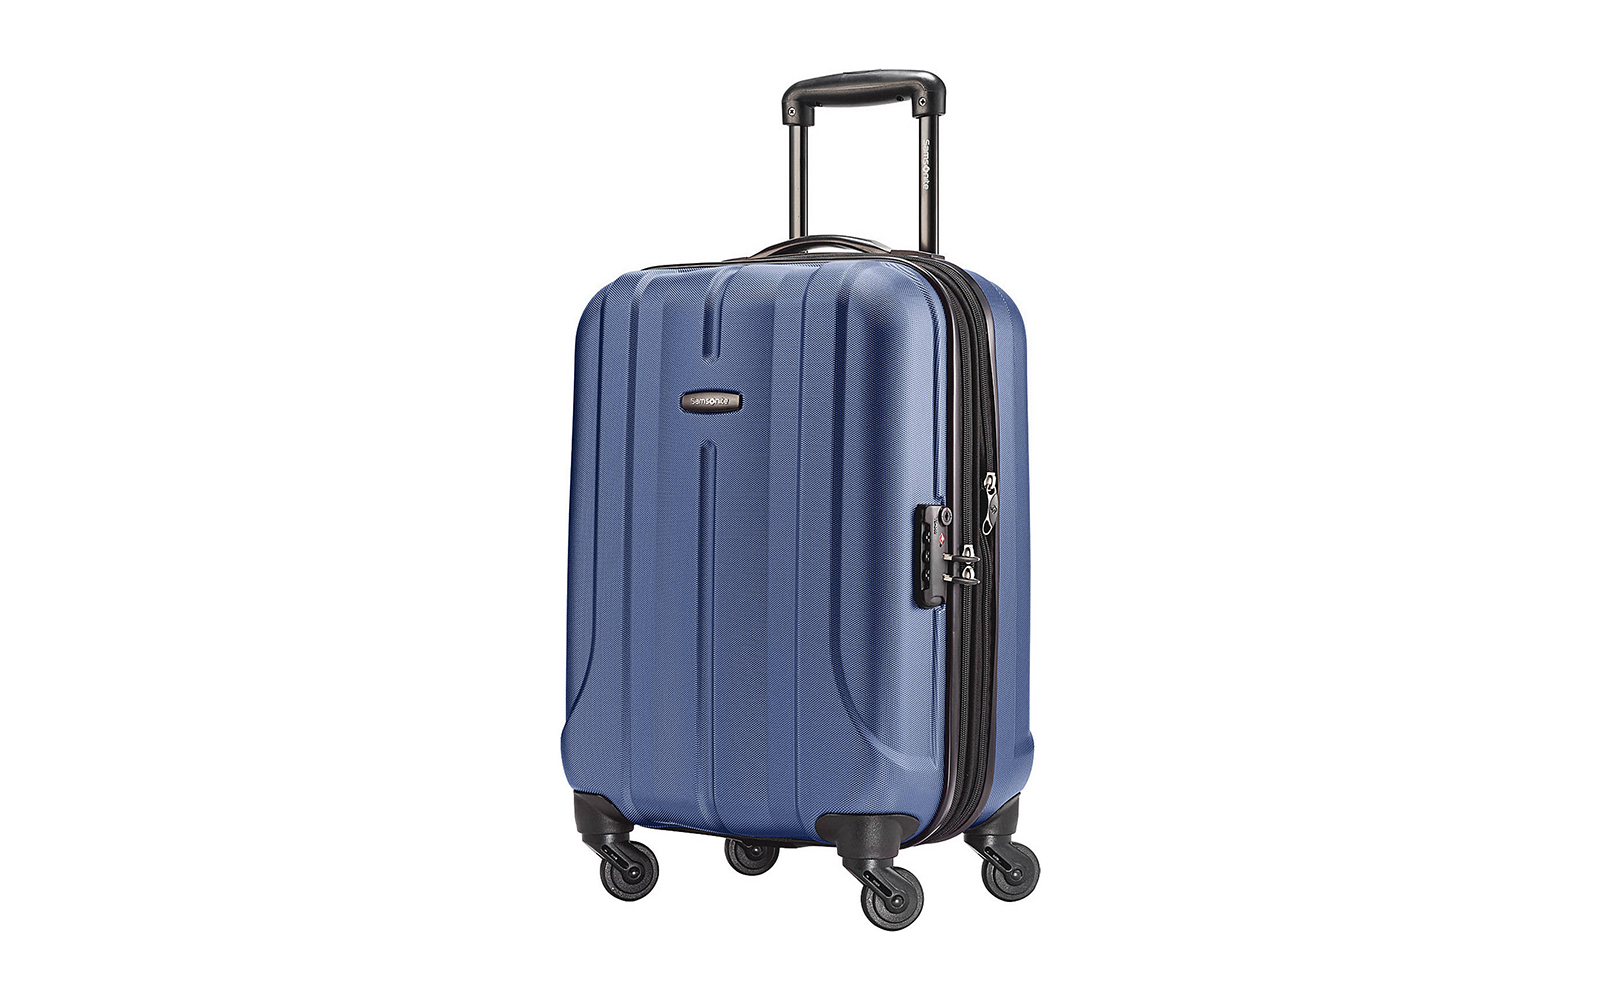 Samsonite Fiero HS Spinner 20